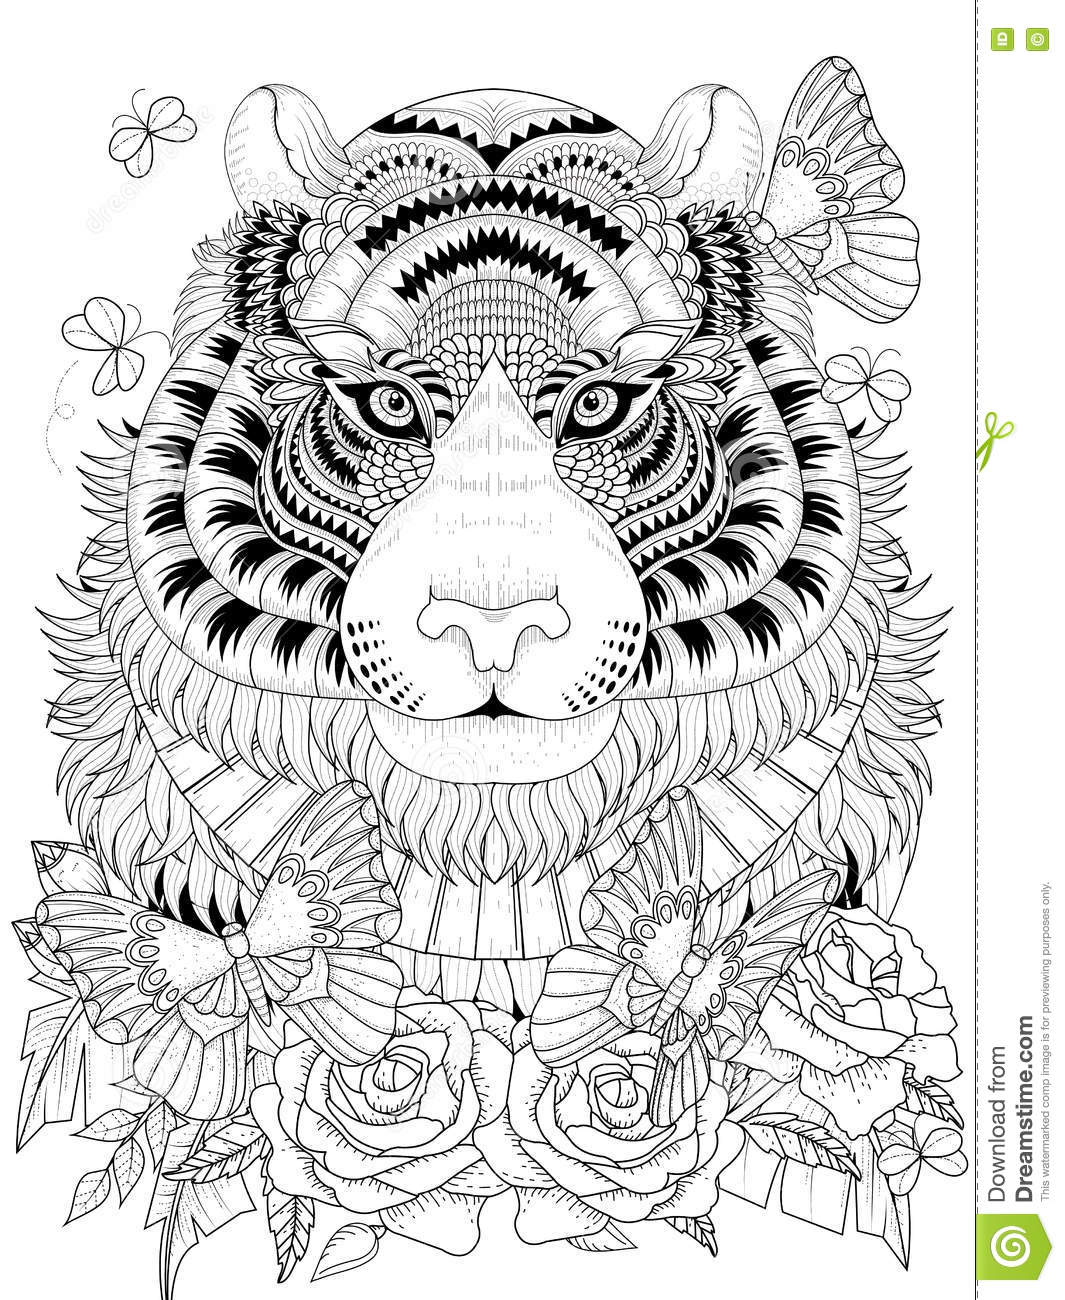 tiger coloring pages for adults Imposing Tiger Adult Coloring Page Stock Vector   Illustration of  tiger coloring pages for adults